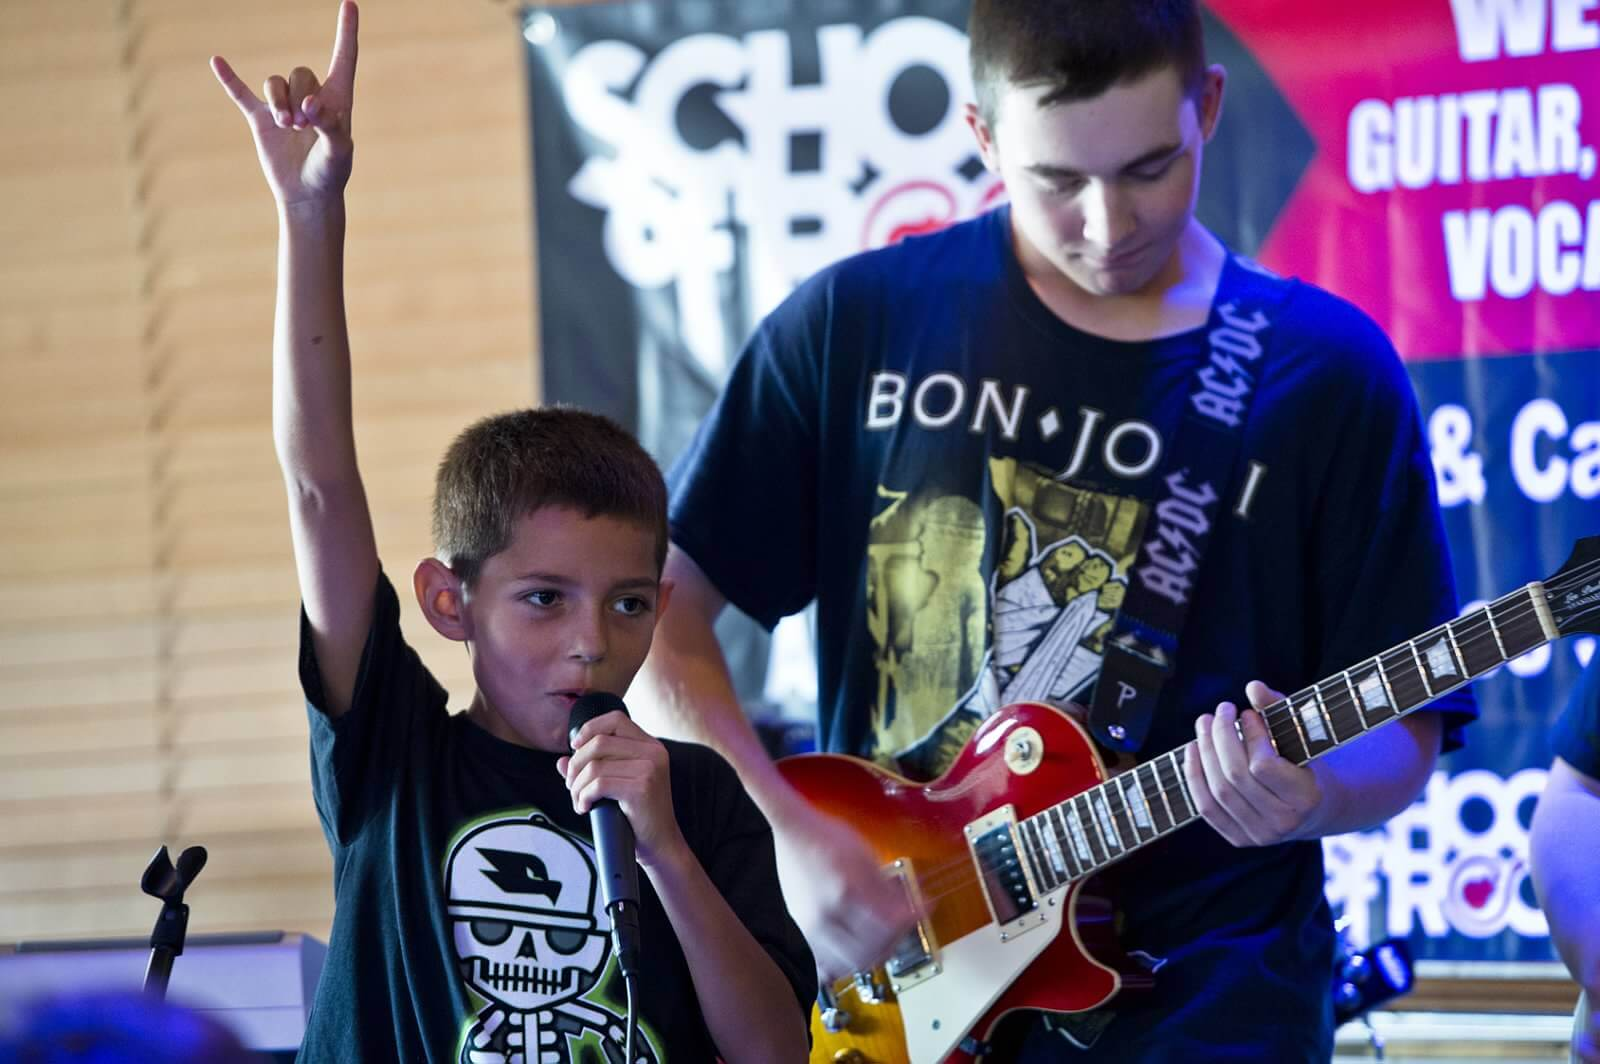 Become a musician and perform onstage.